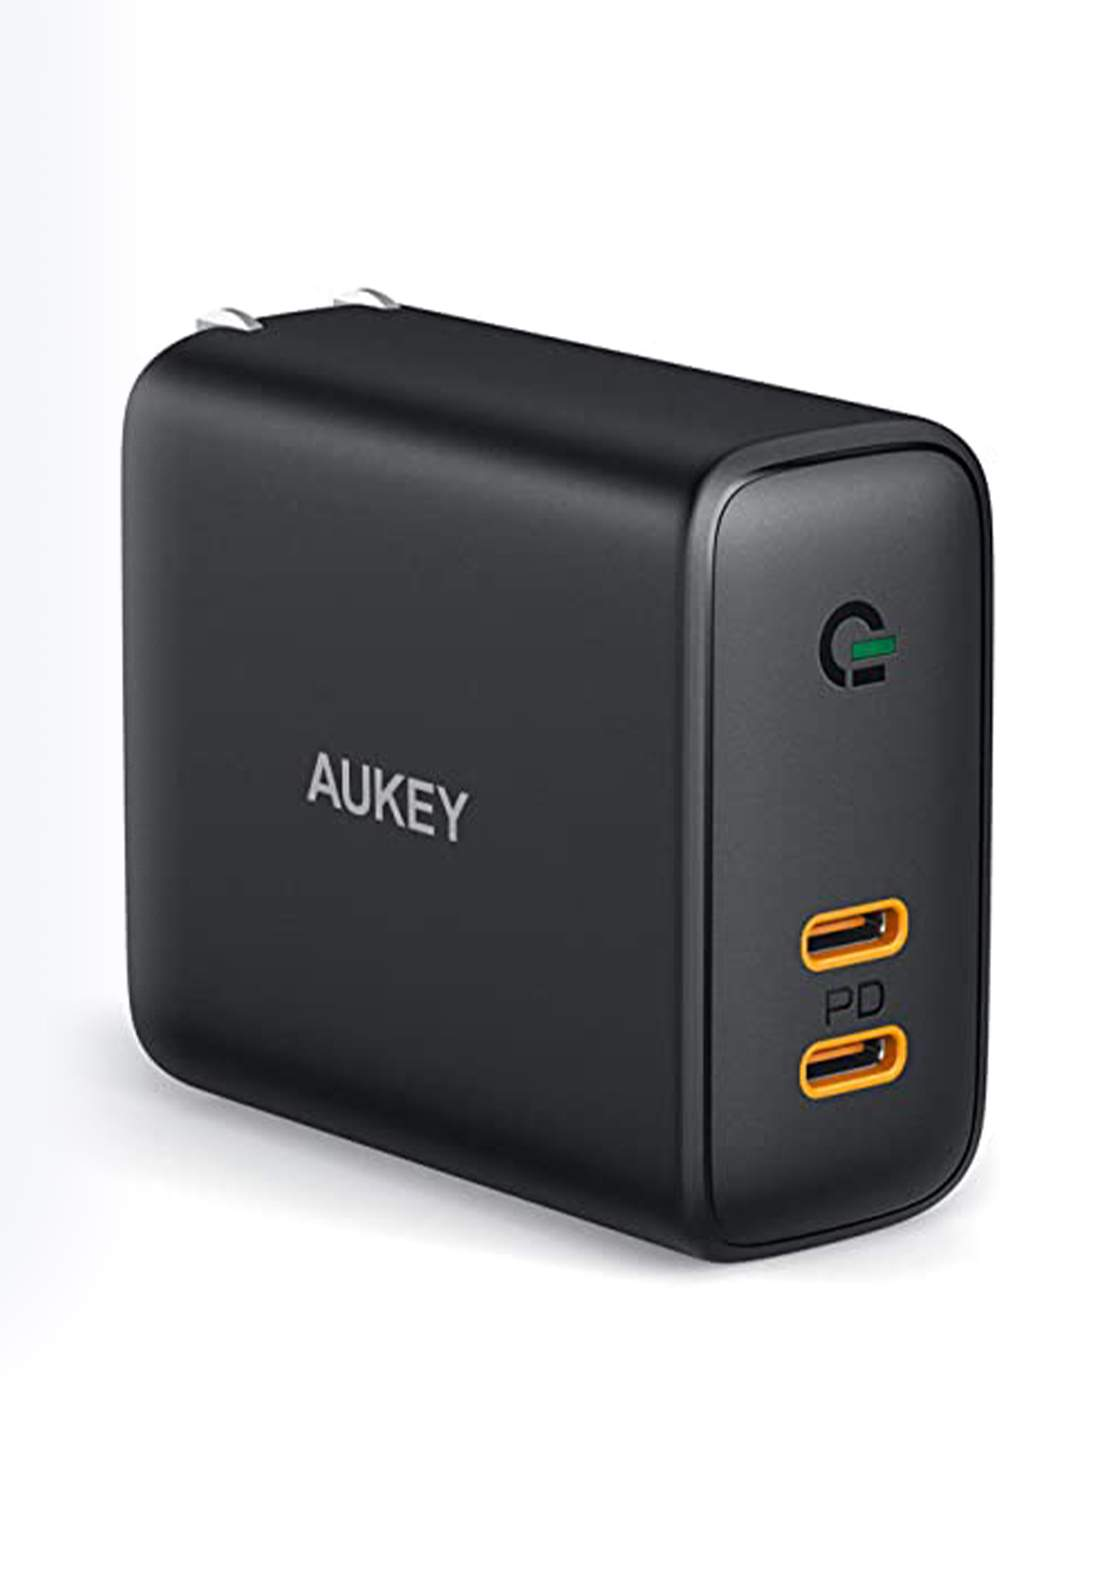 Aukey PA-D2 36W Power Delivery Dual-Port PD USB C Charger with Dynamic Detect   - Black شاحن